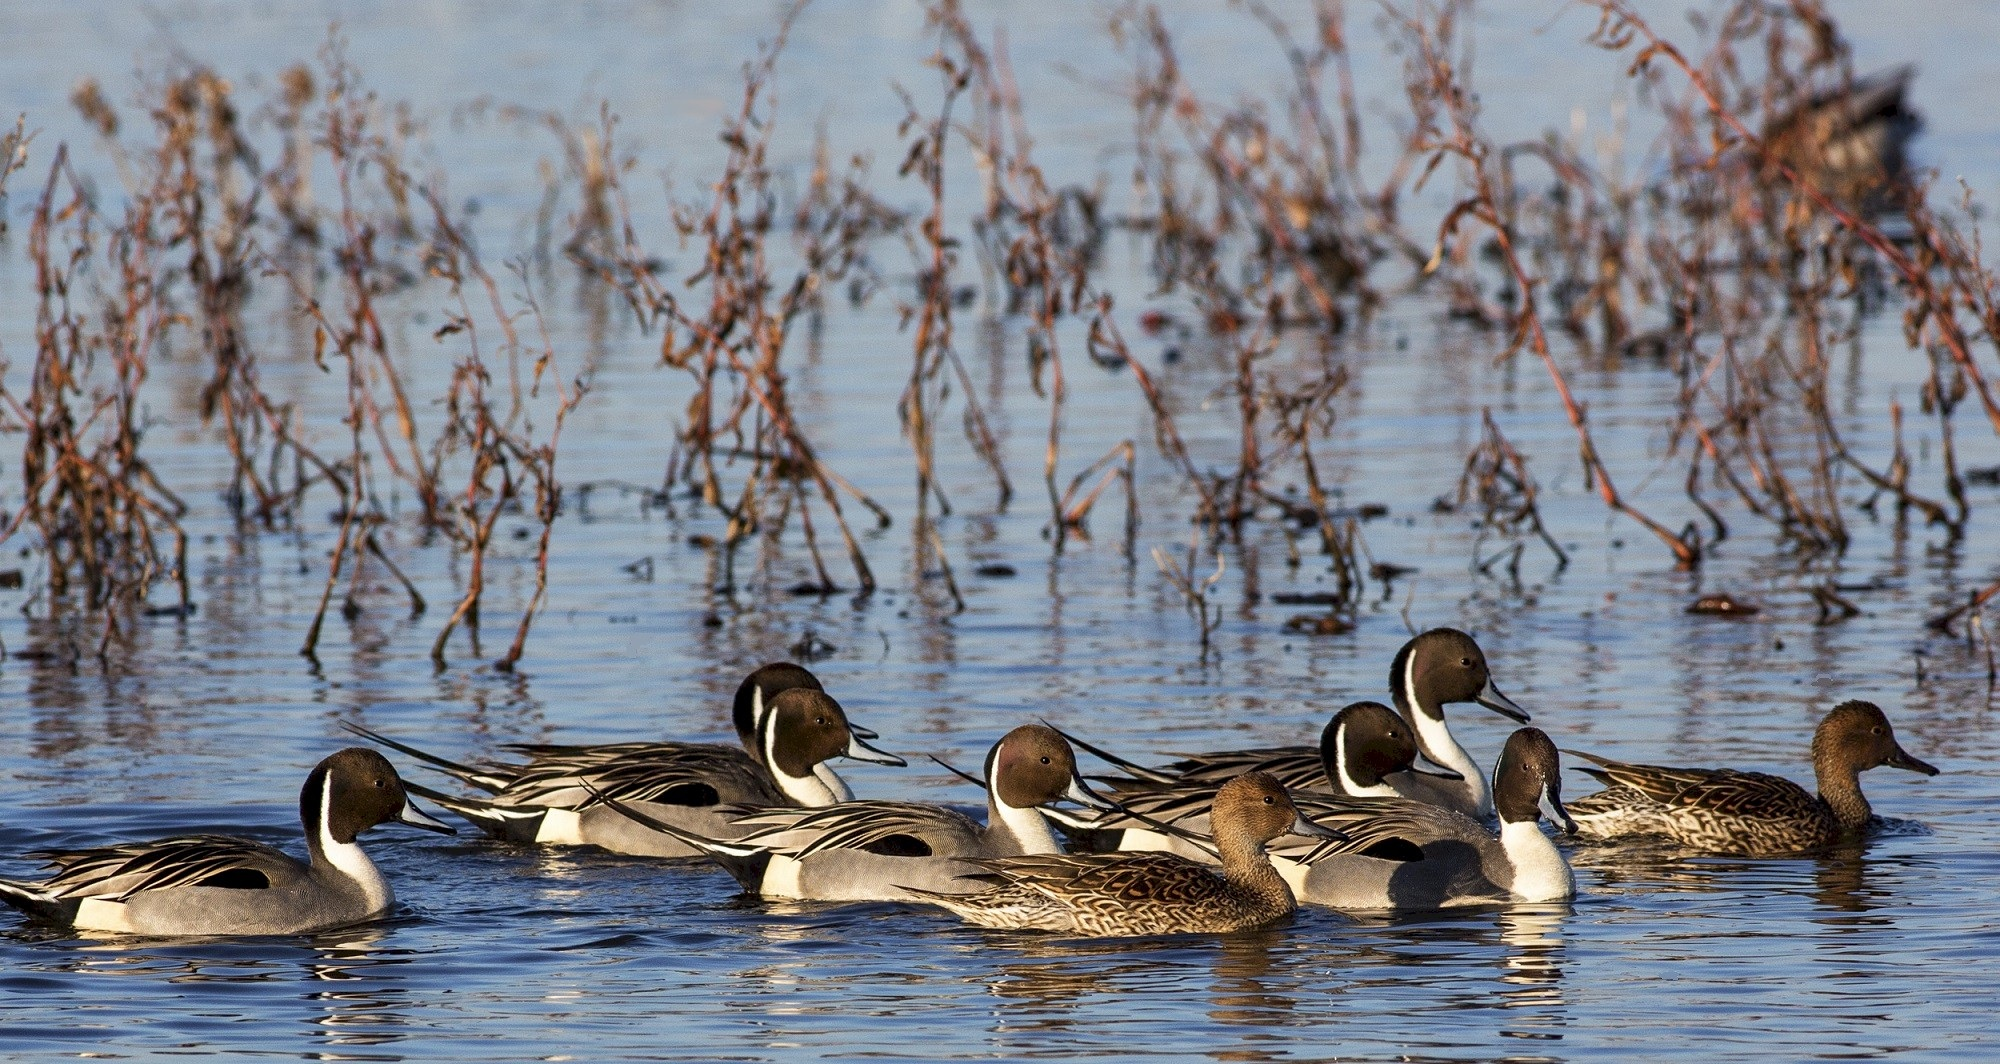 Pintail ducks in the river photo